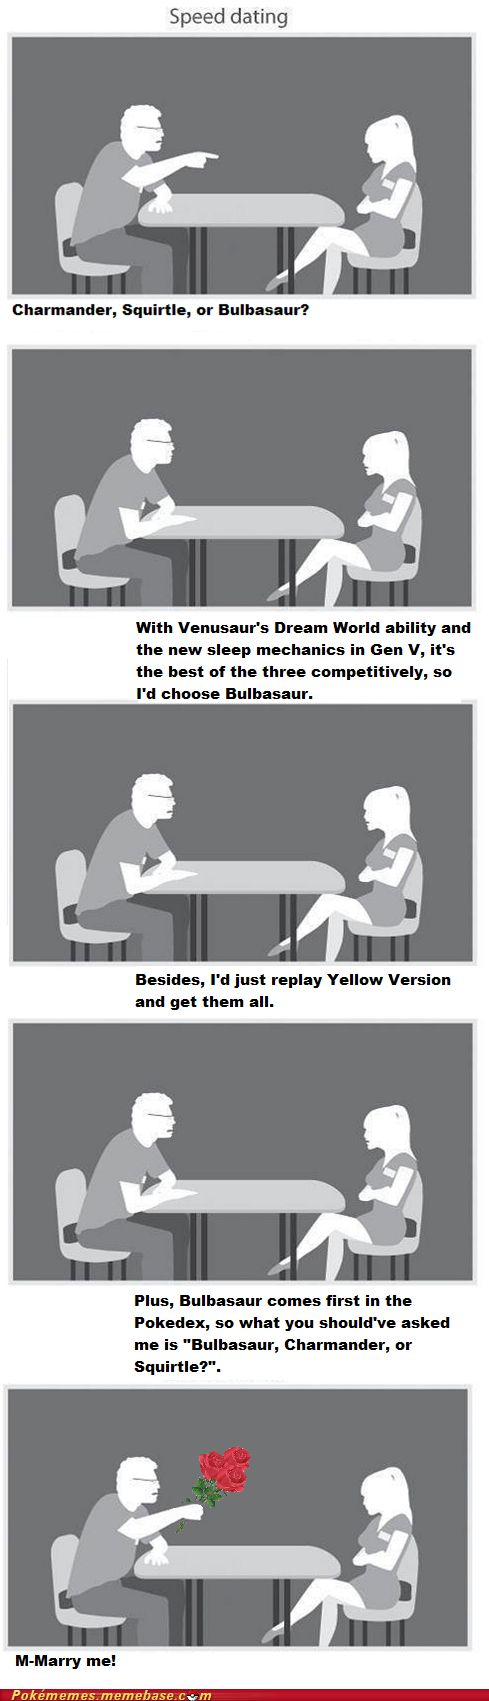 speed dating funny pictures Glenn from the walking dead on dating next page written by.